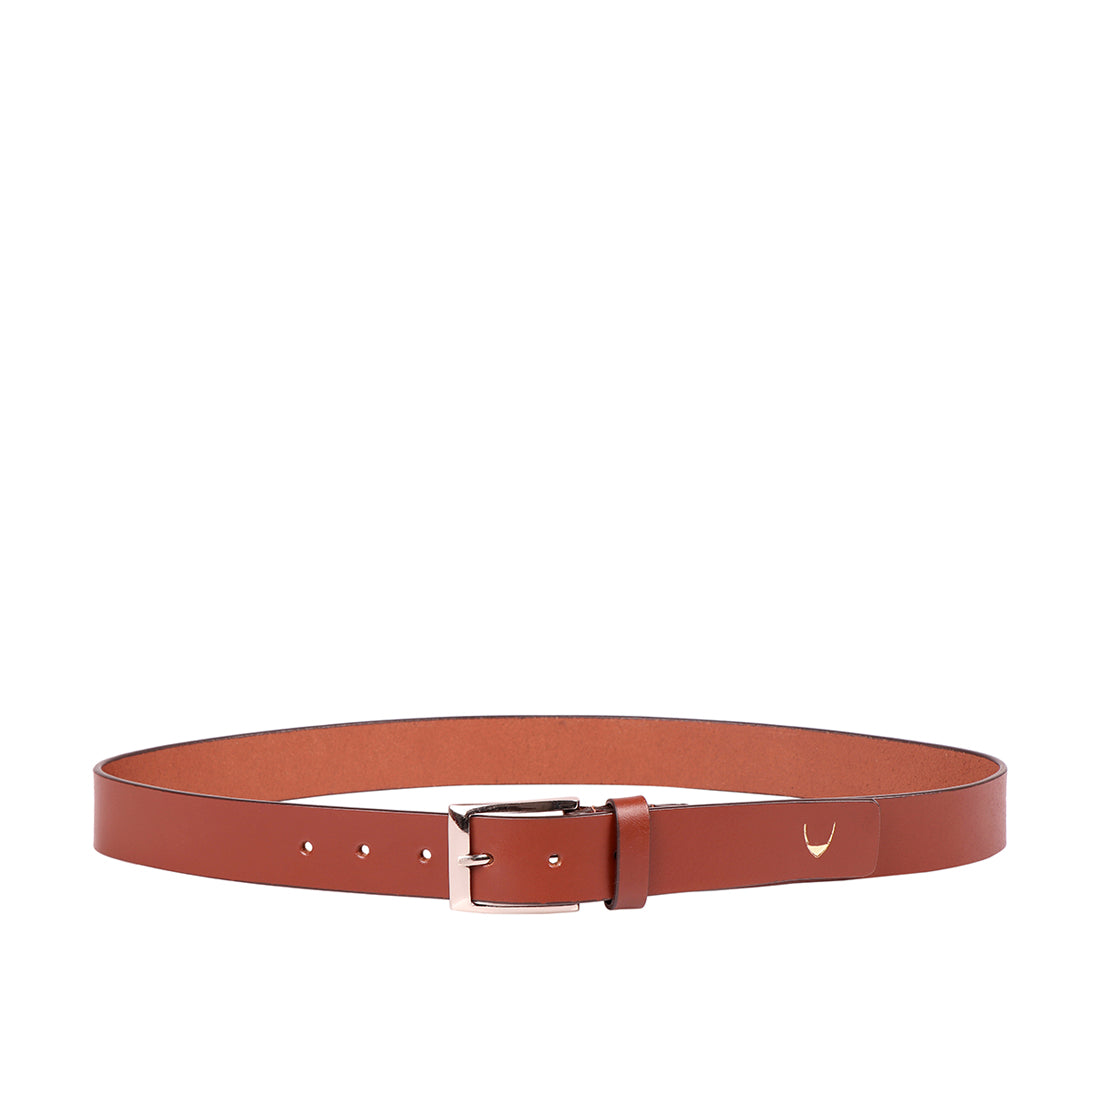 EE LEWIS MENS NON-REVERSIBLE BELT